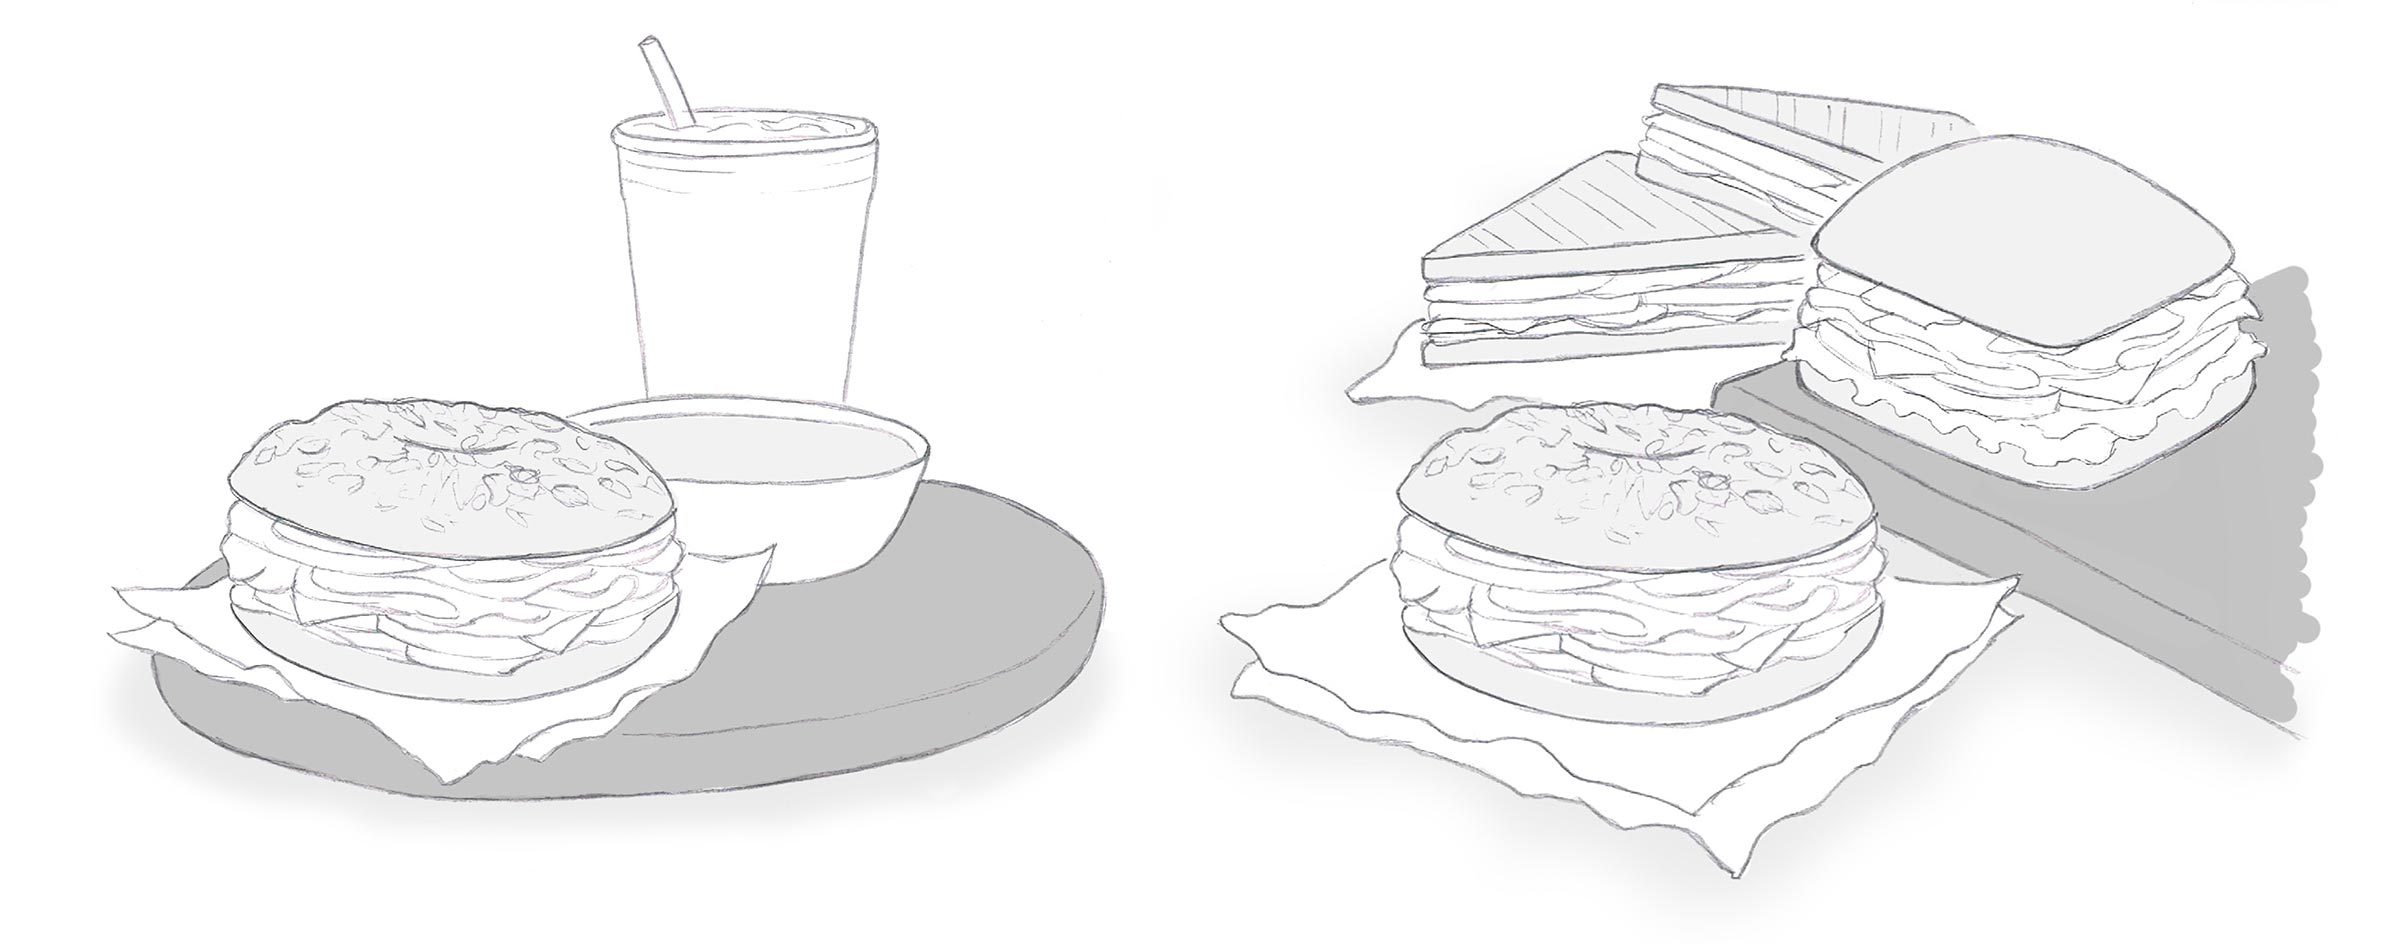 Hand-drawn sketches of sandwiches, a soup bowl and cold drink